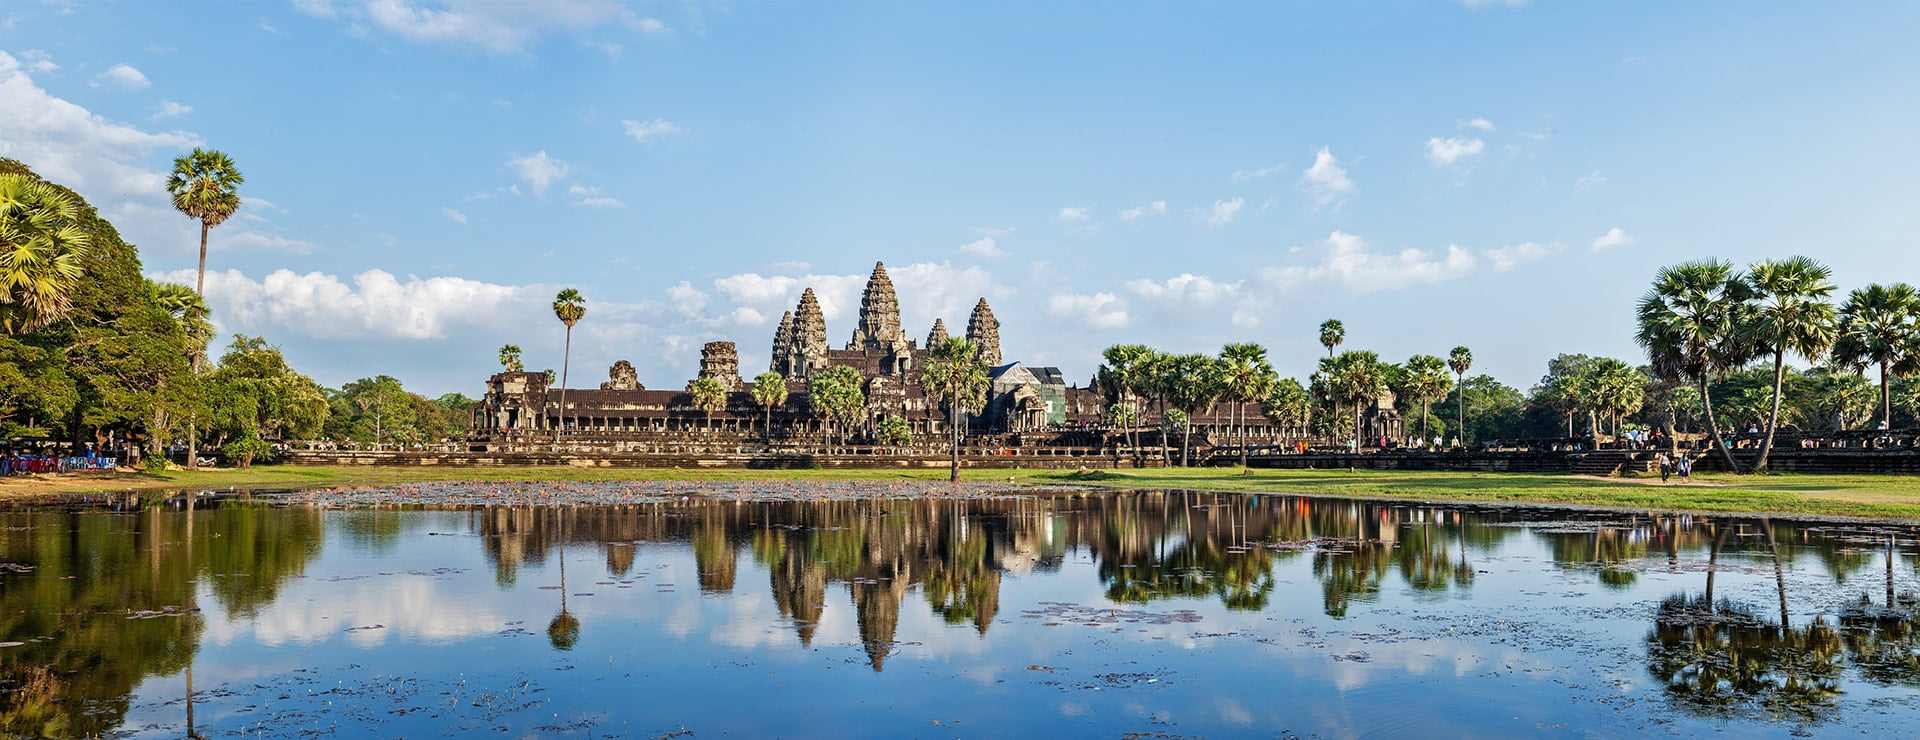 Panorama of famous Angkor Wat